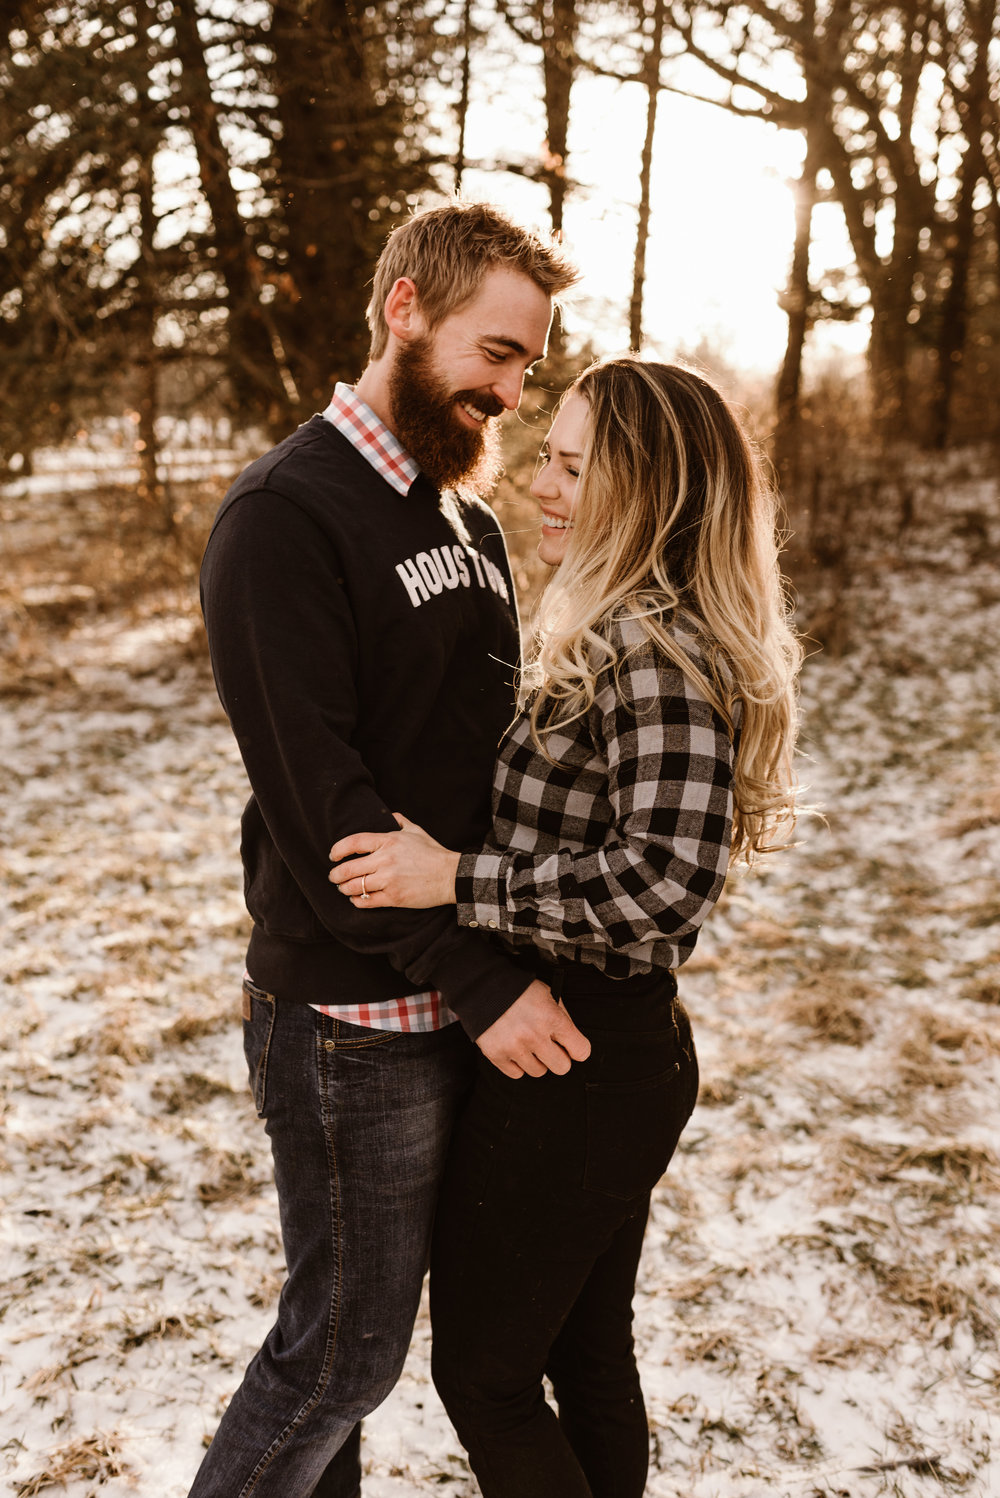 Nebraska Engagement Photographer Kaylie Sirek Photography 018.jpg